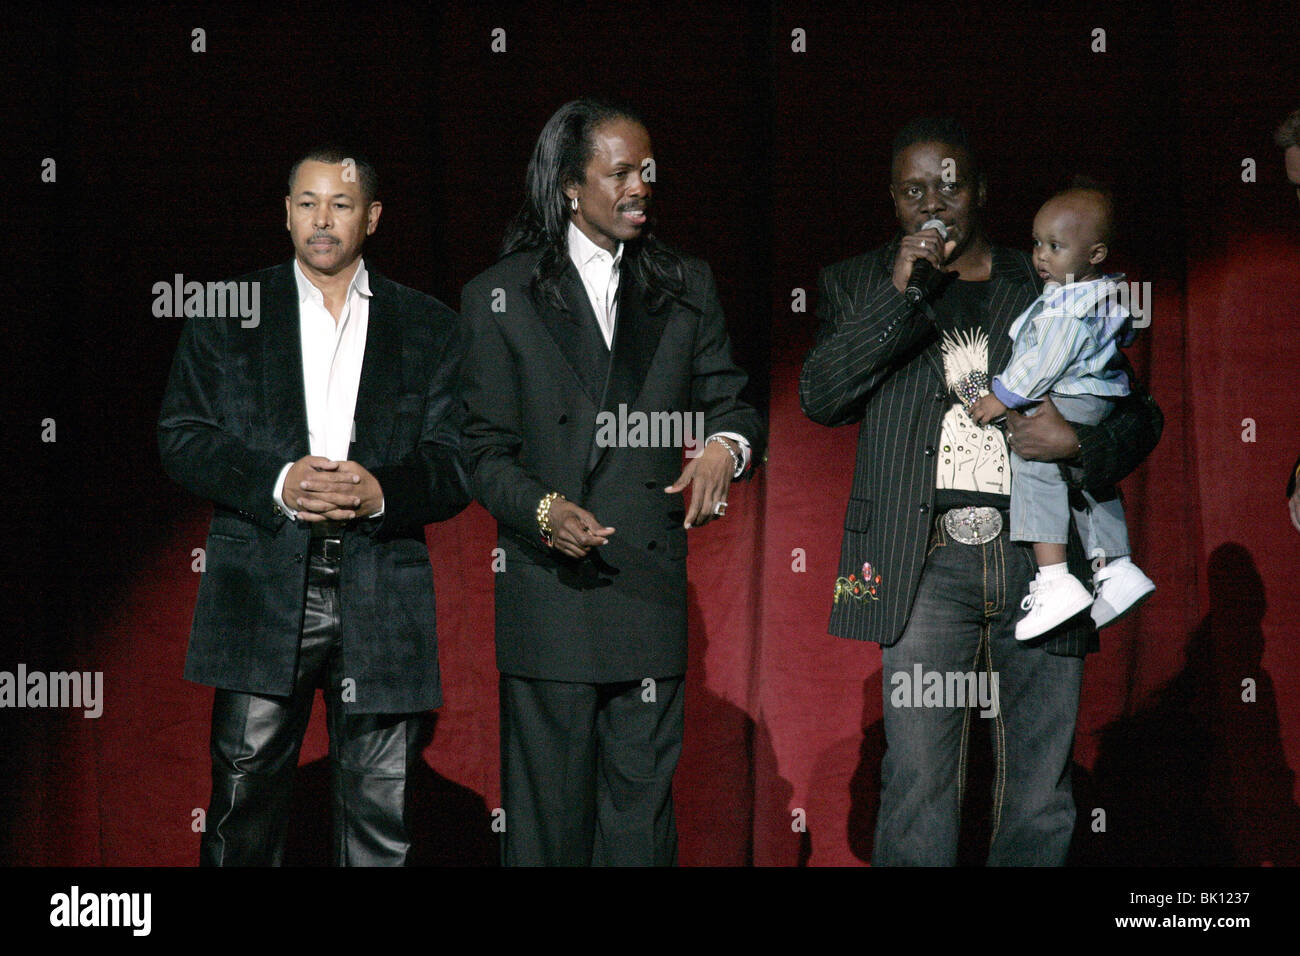 EARTH WIND & FIRE 2005 AGASSI GRAND SLAM GALA MGM GRAND HOTEL & CASINO LAS VEGAS USA 01 October 2005 - Stock Image